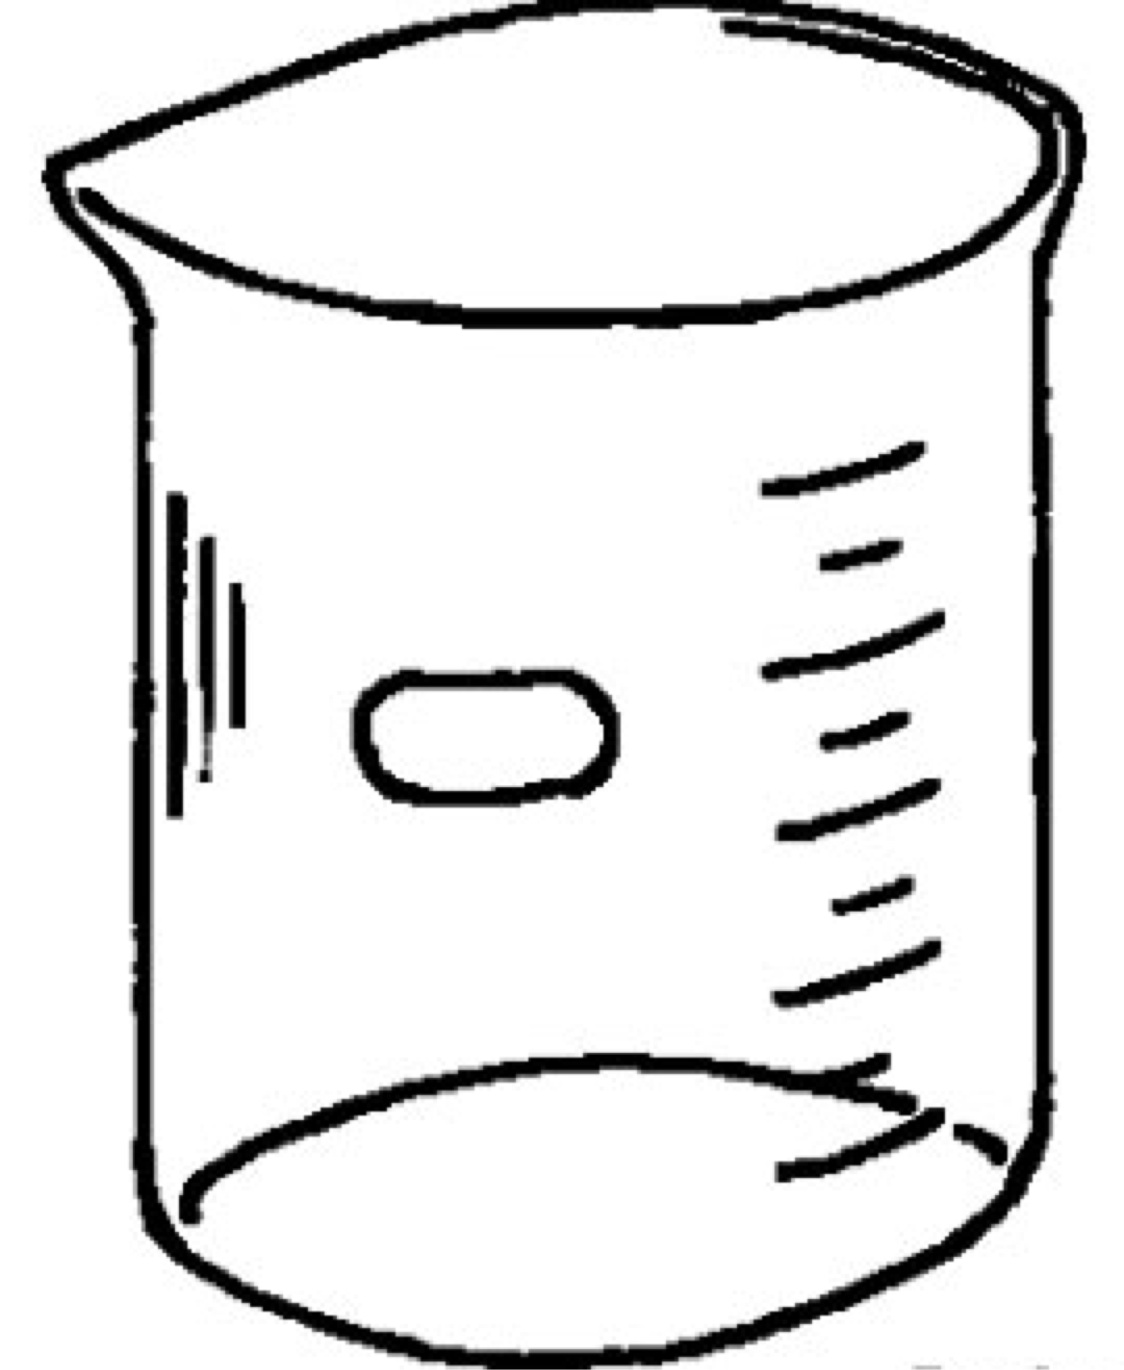 Beaker clipart draw. Graduated cylinder drawing at